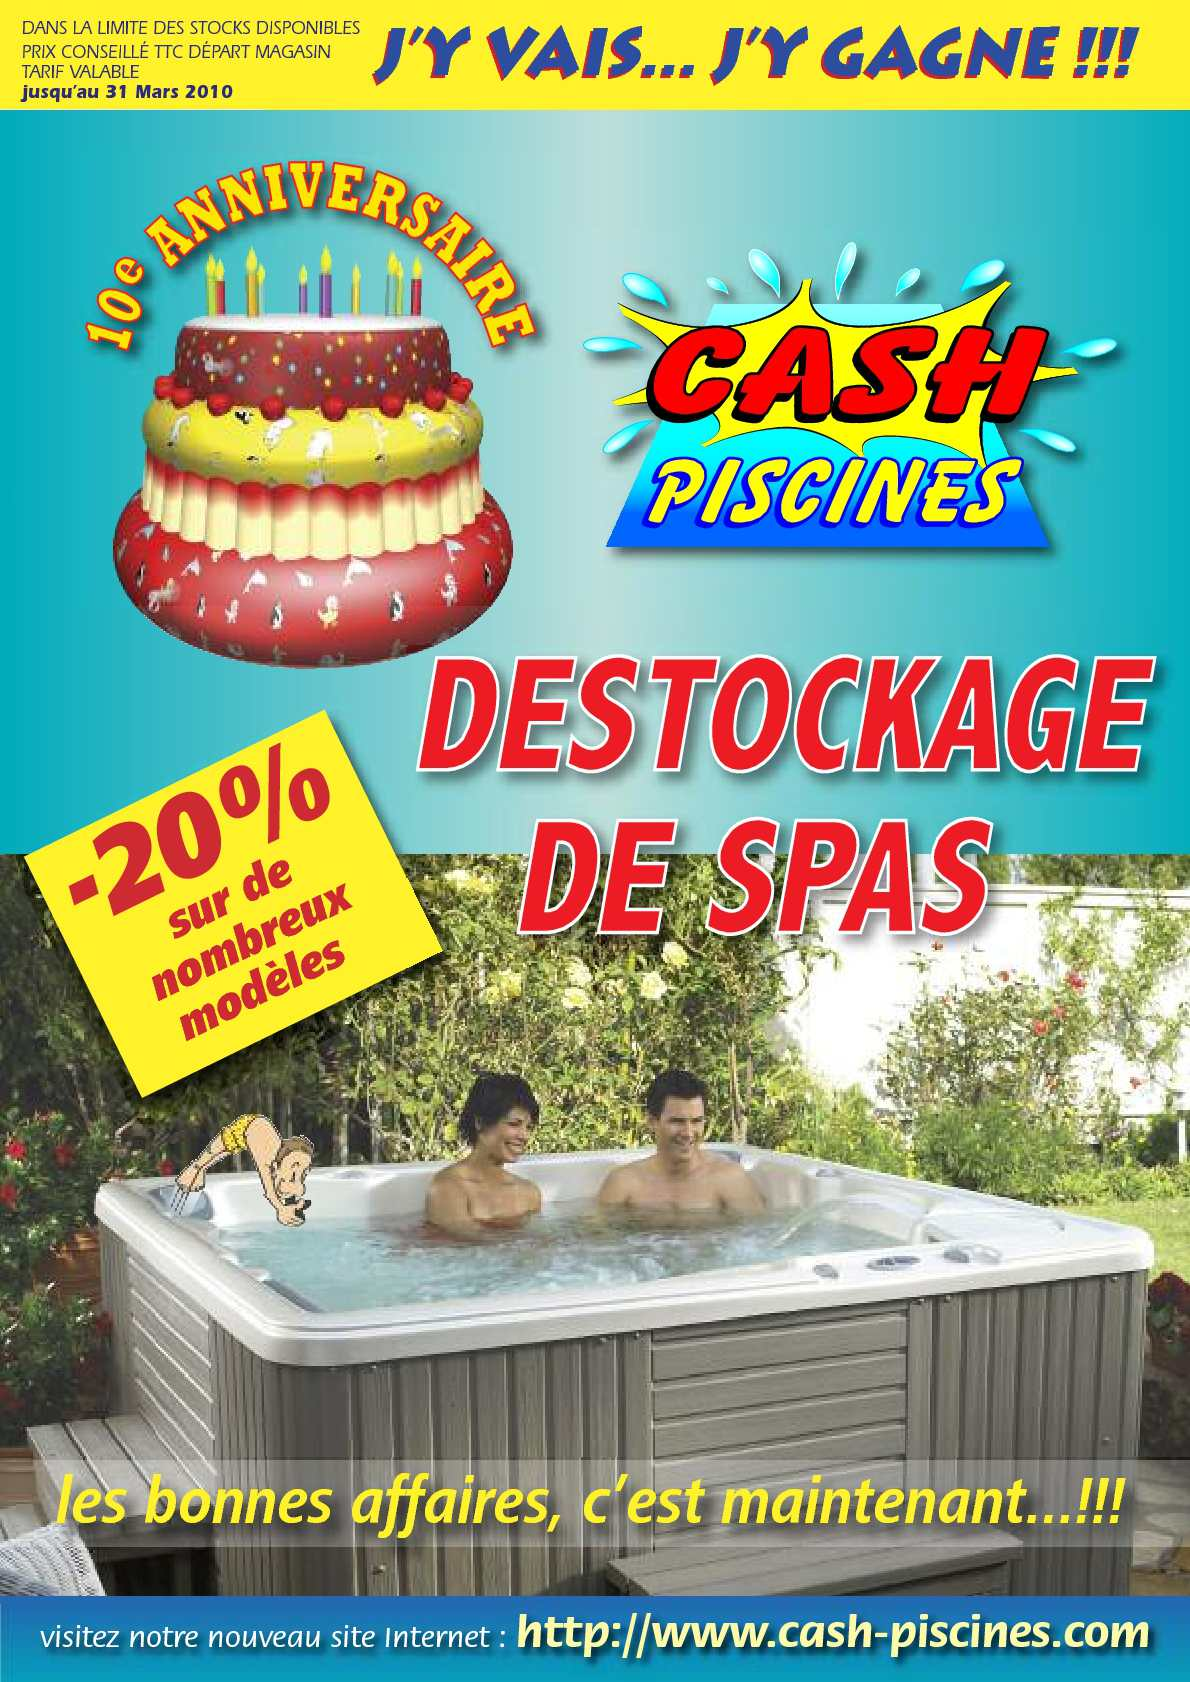 Calam o catalogue cash piscine - Piscine cash piscine ...